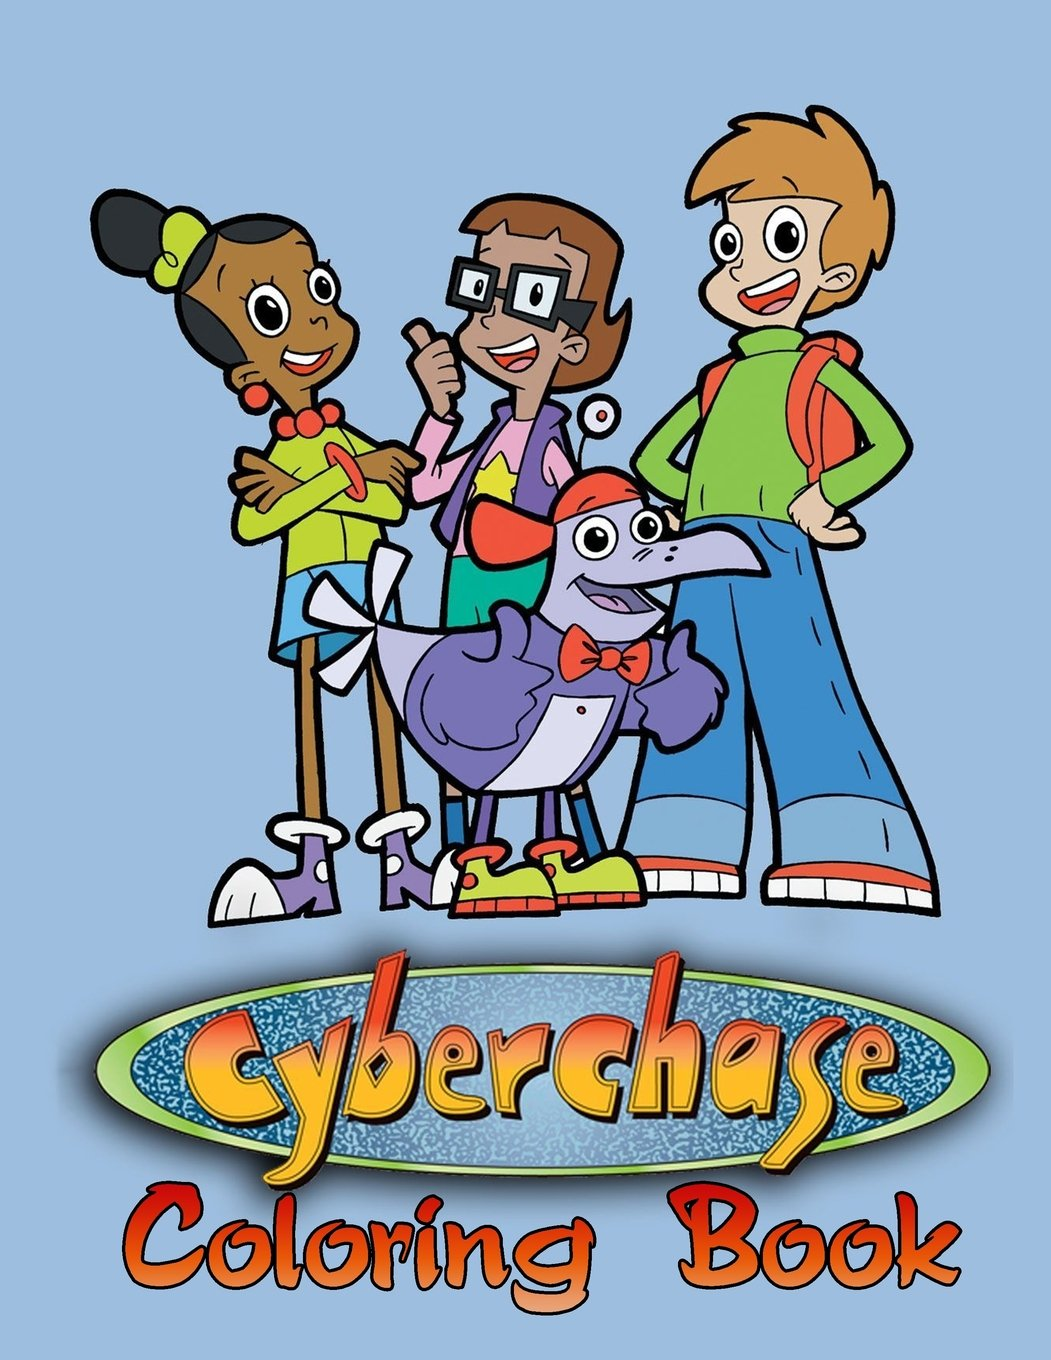 Cyberchase Coloring Book: One of the Best Coloring Book for Kids and Adults, Mini Coloring Book for Little Kids, Activity Book for All Family Members ... Books for Girls, Coloring Books for Boys ebook